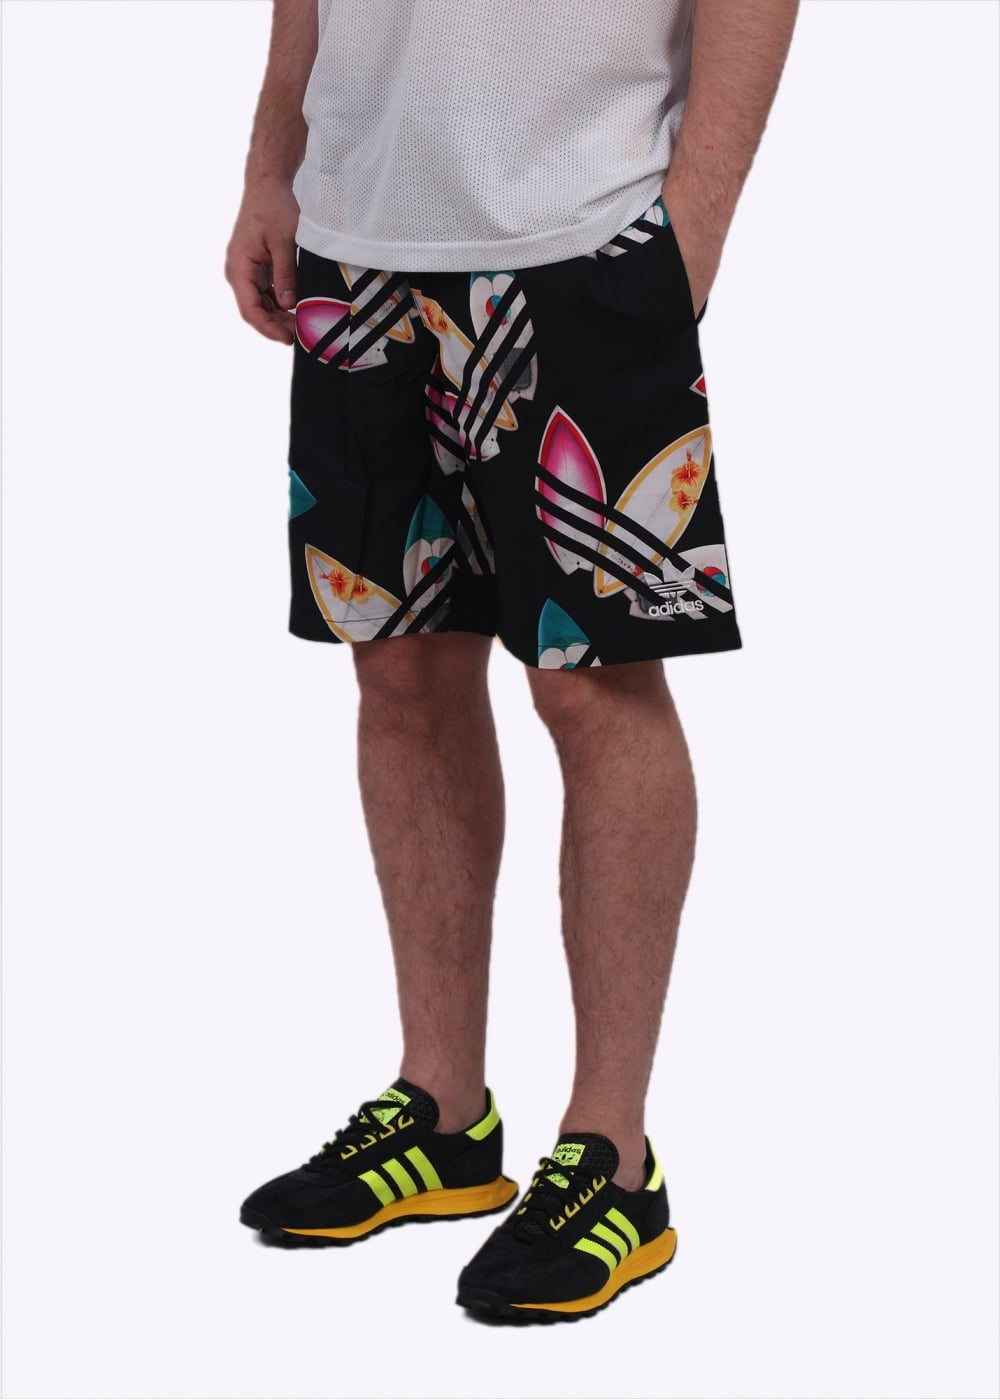 adidas Originals Apparel x Pharrell Williams Surf Shorts - Black ... db6b3d63aa